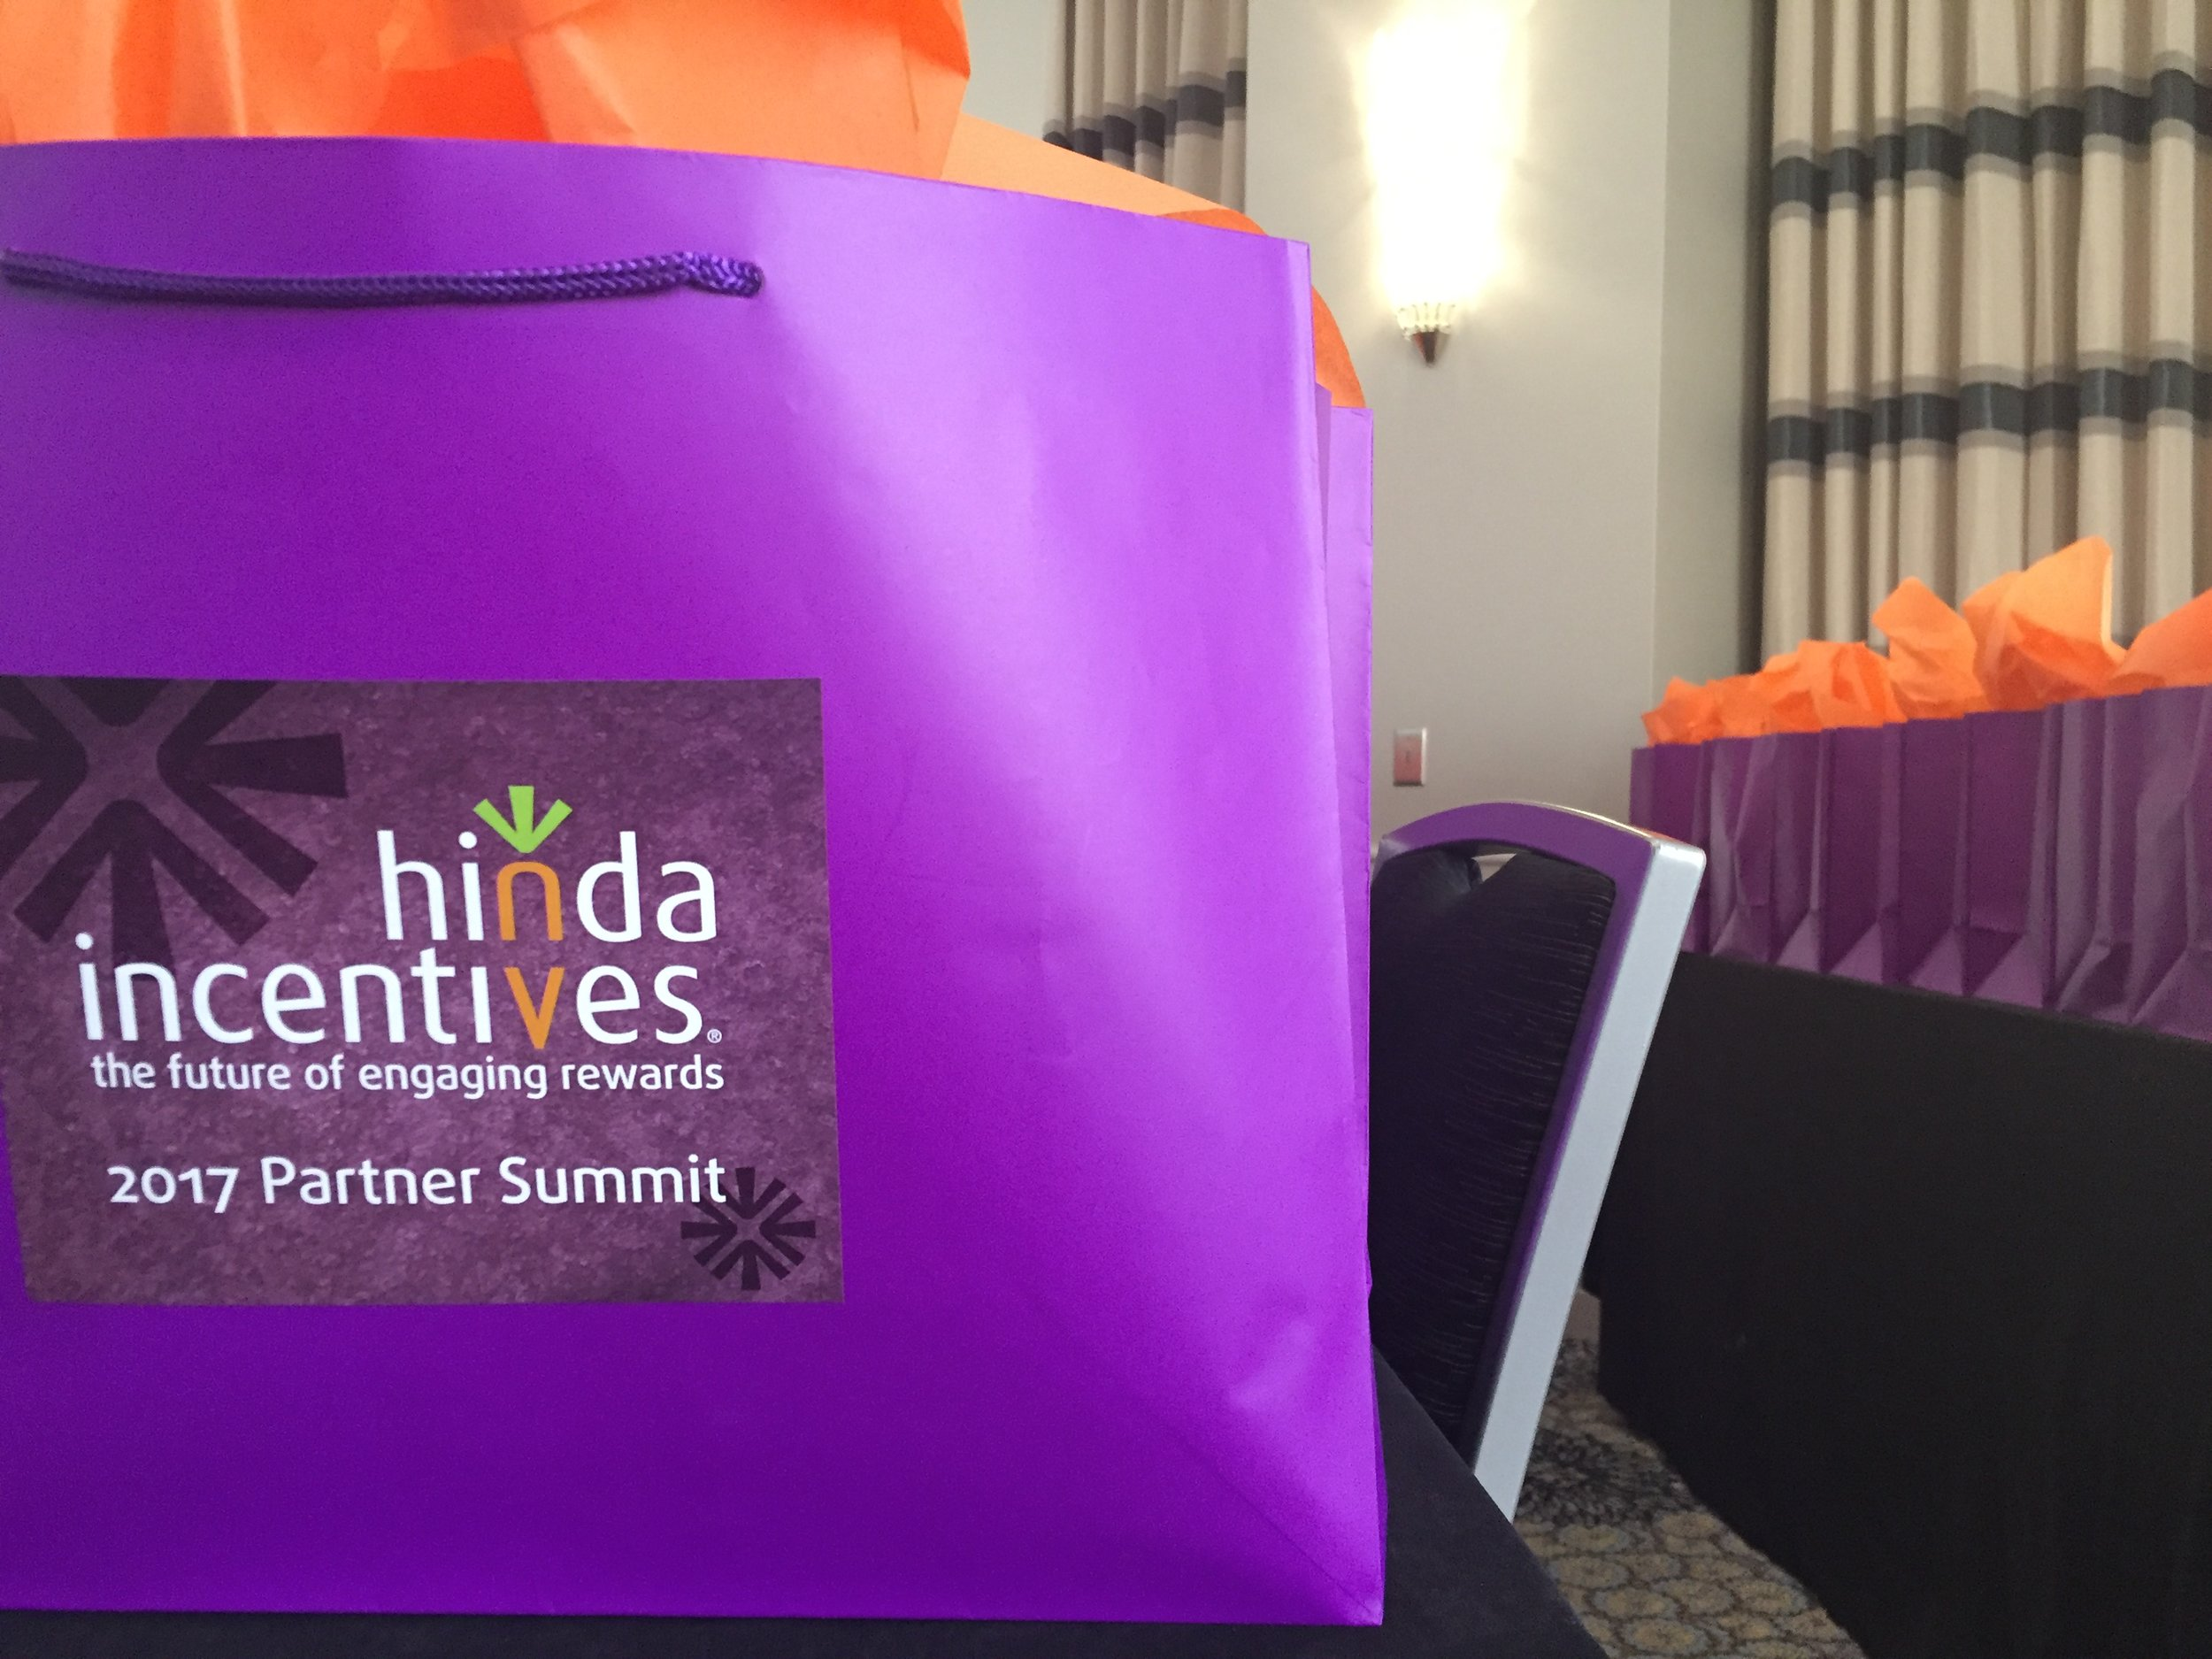 Prepping a room full of goodie bags for summit guests. Loving the Hinda colors!